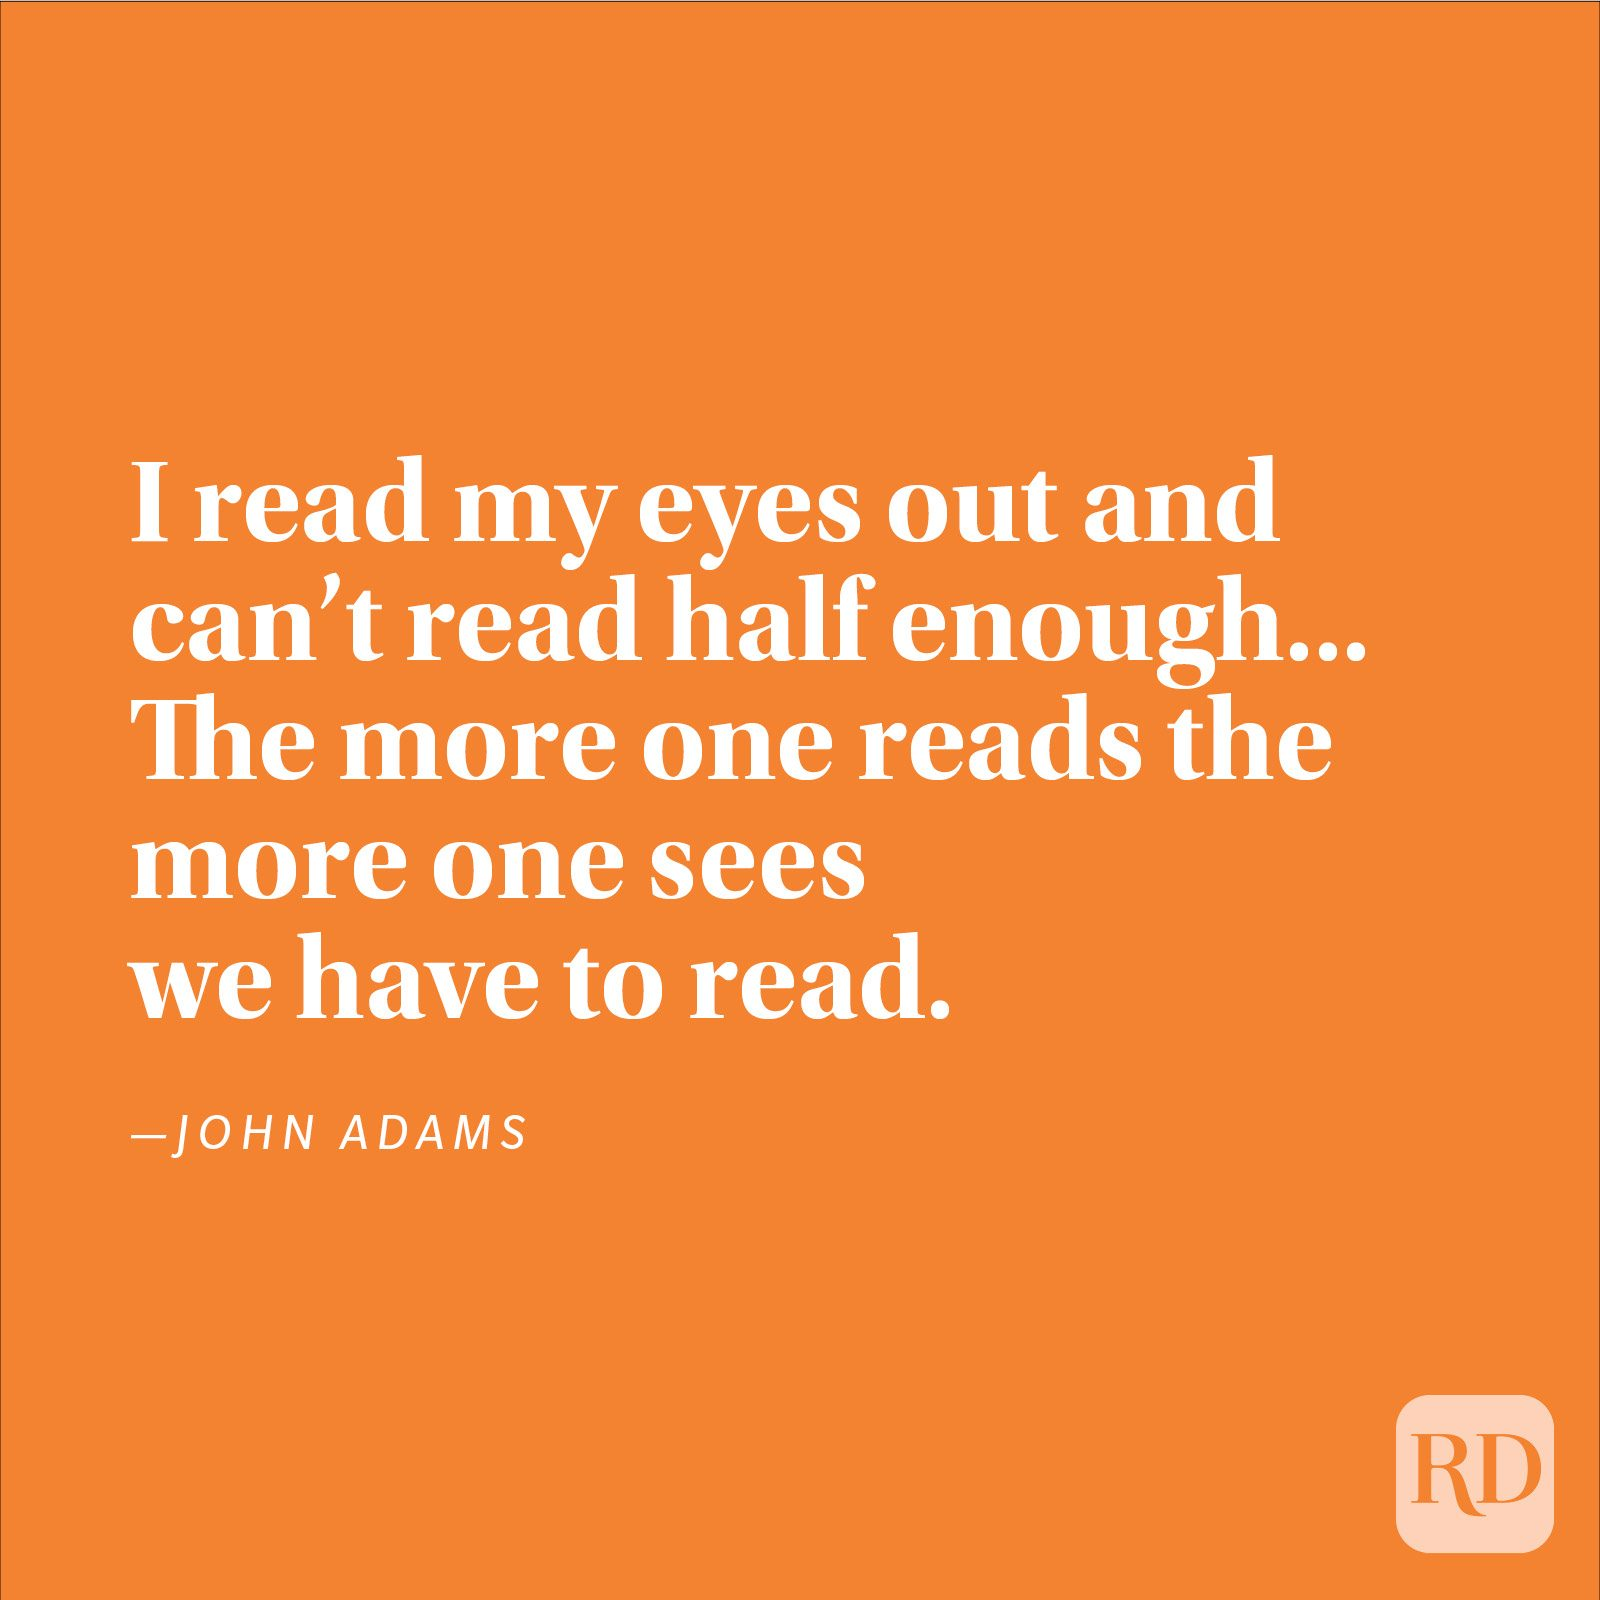 """I read my eyes out and can't read half enough... The more one reads the more one sees we have to read."" —John Adams"